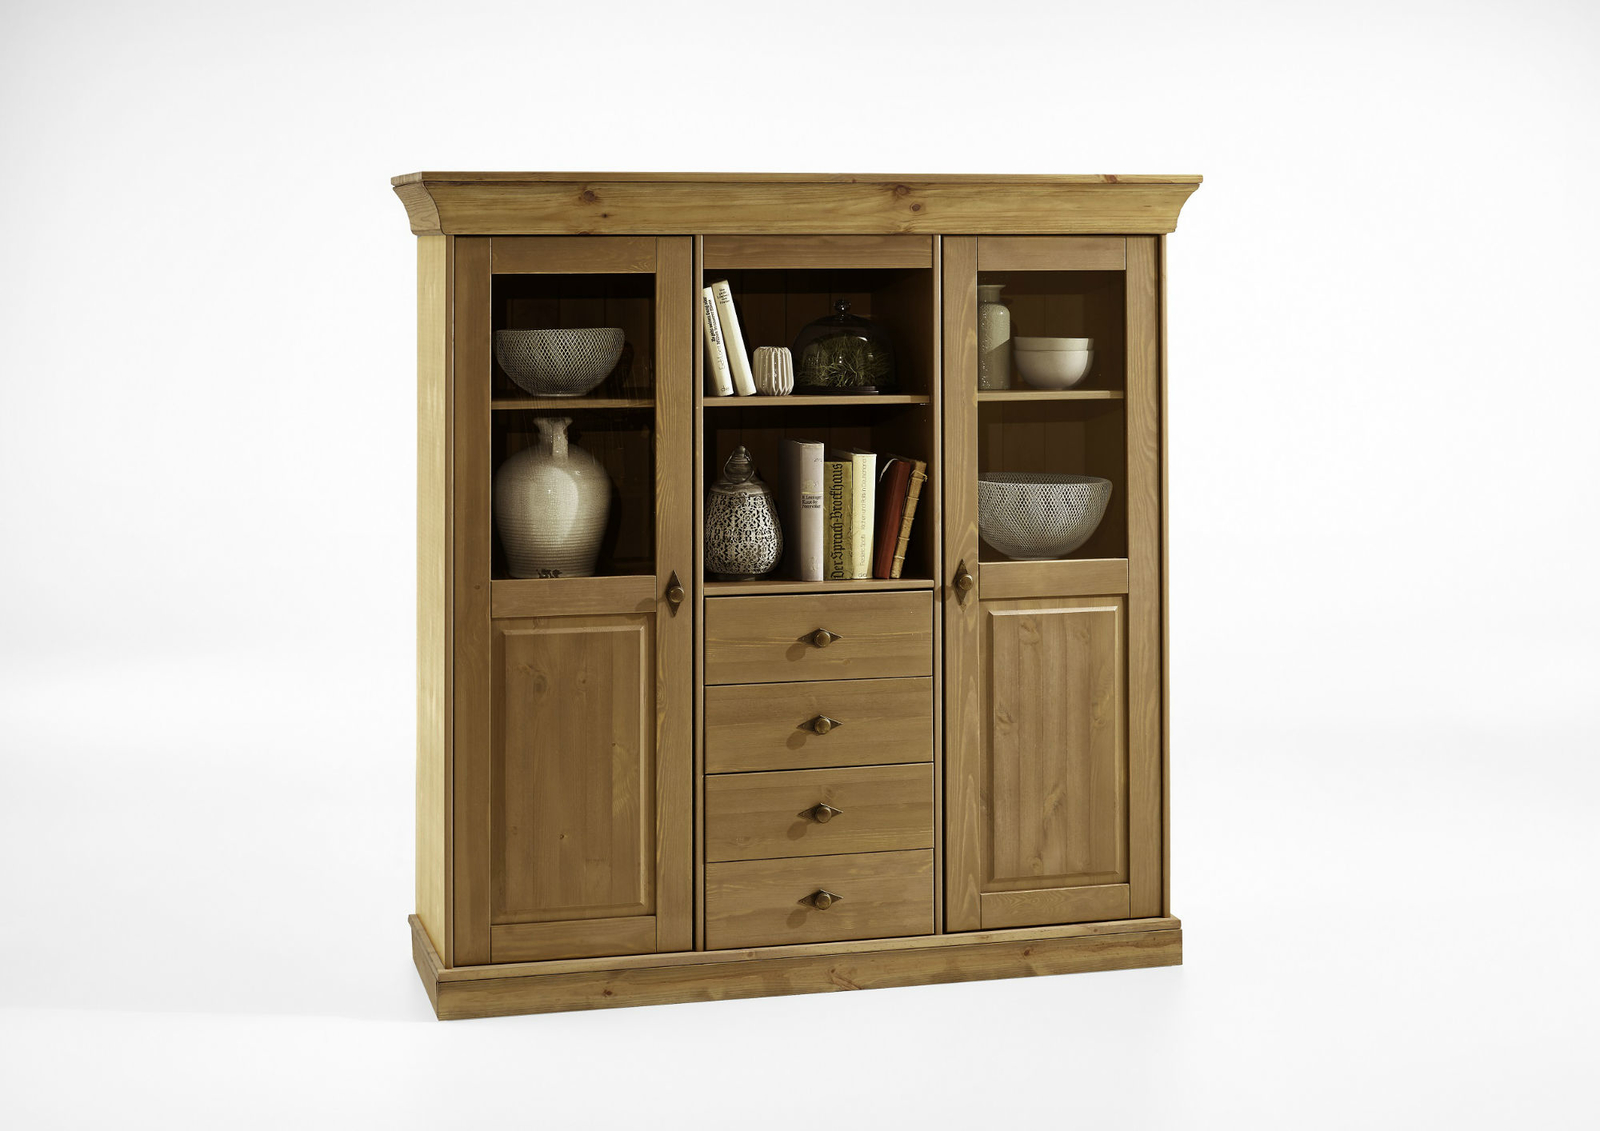 Highboard Bergen Landhaus, Bild 5